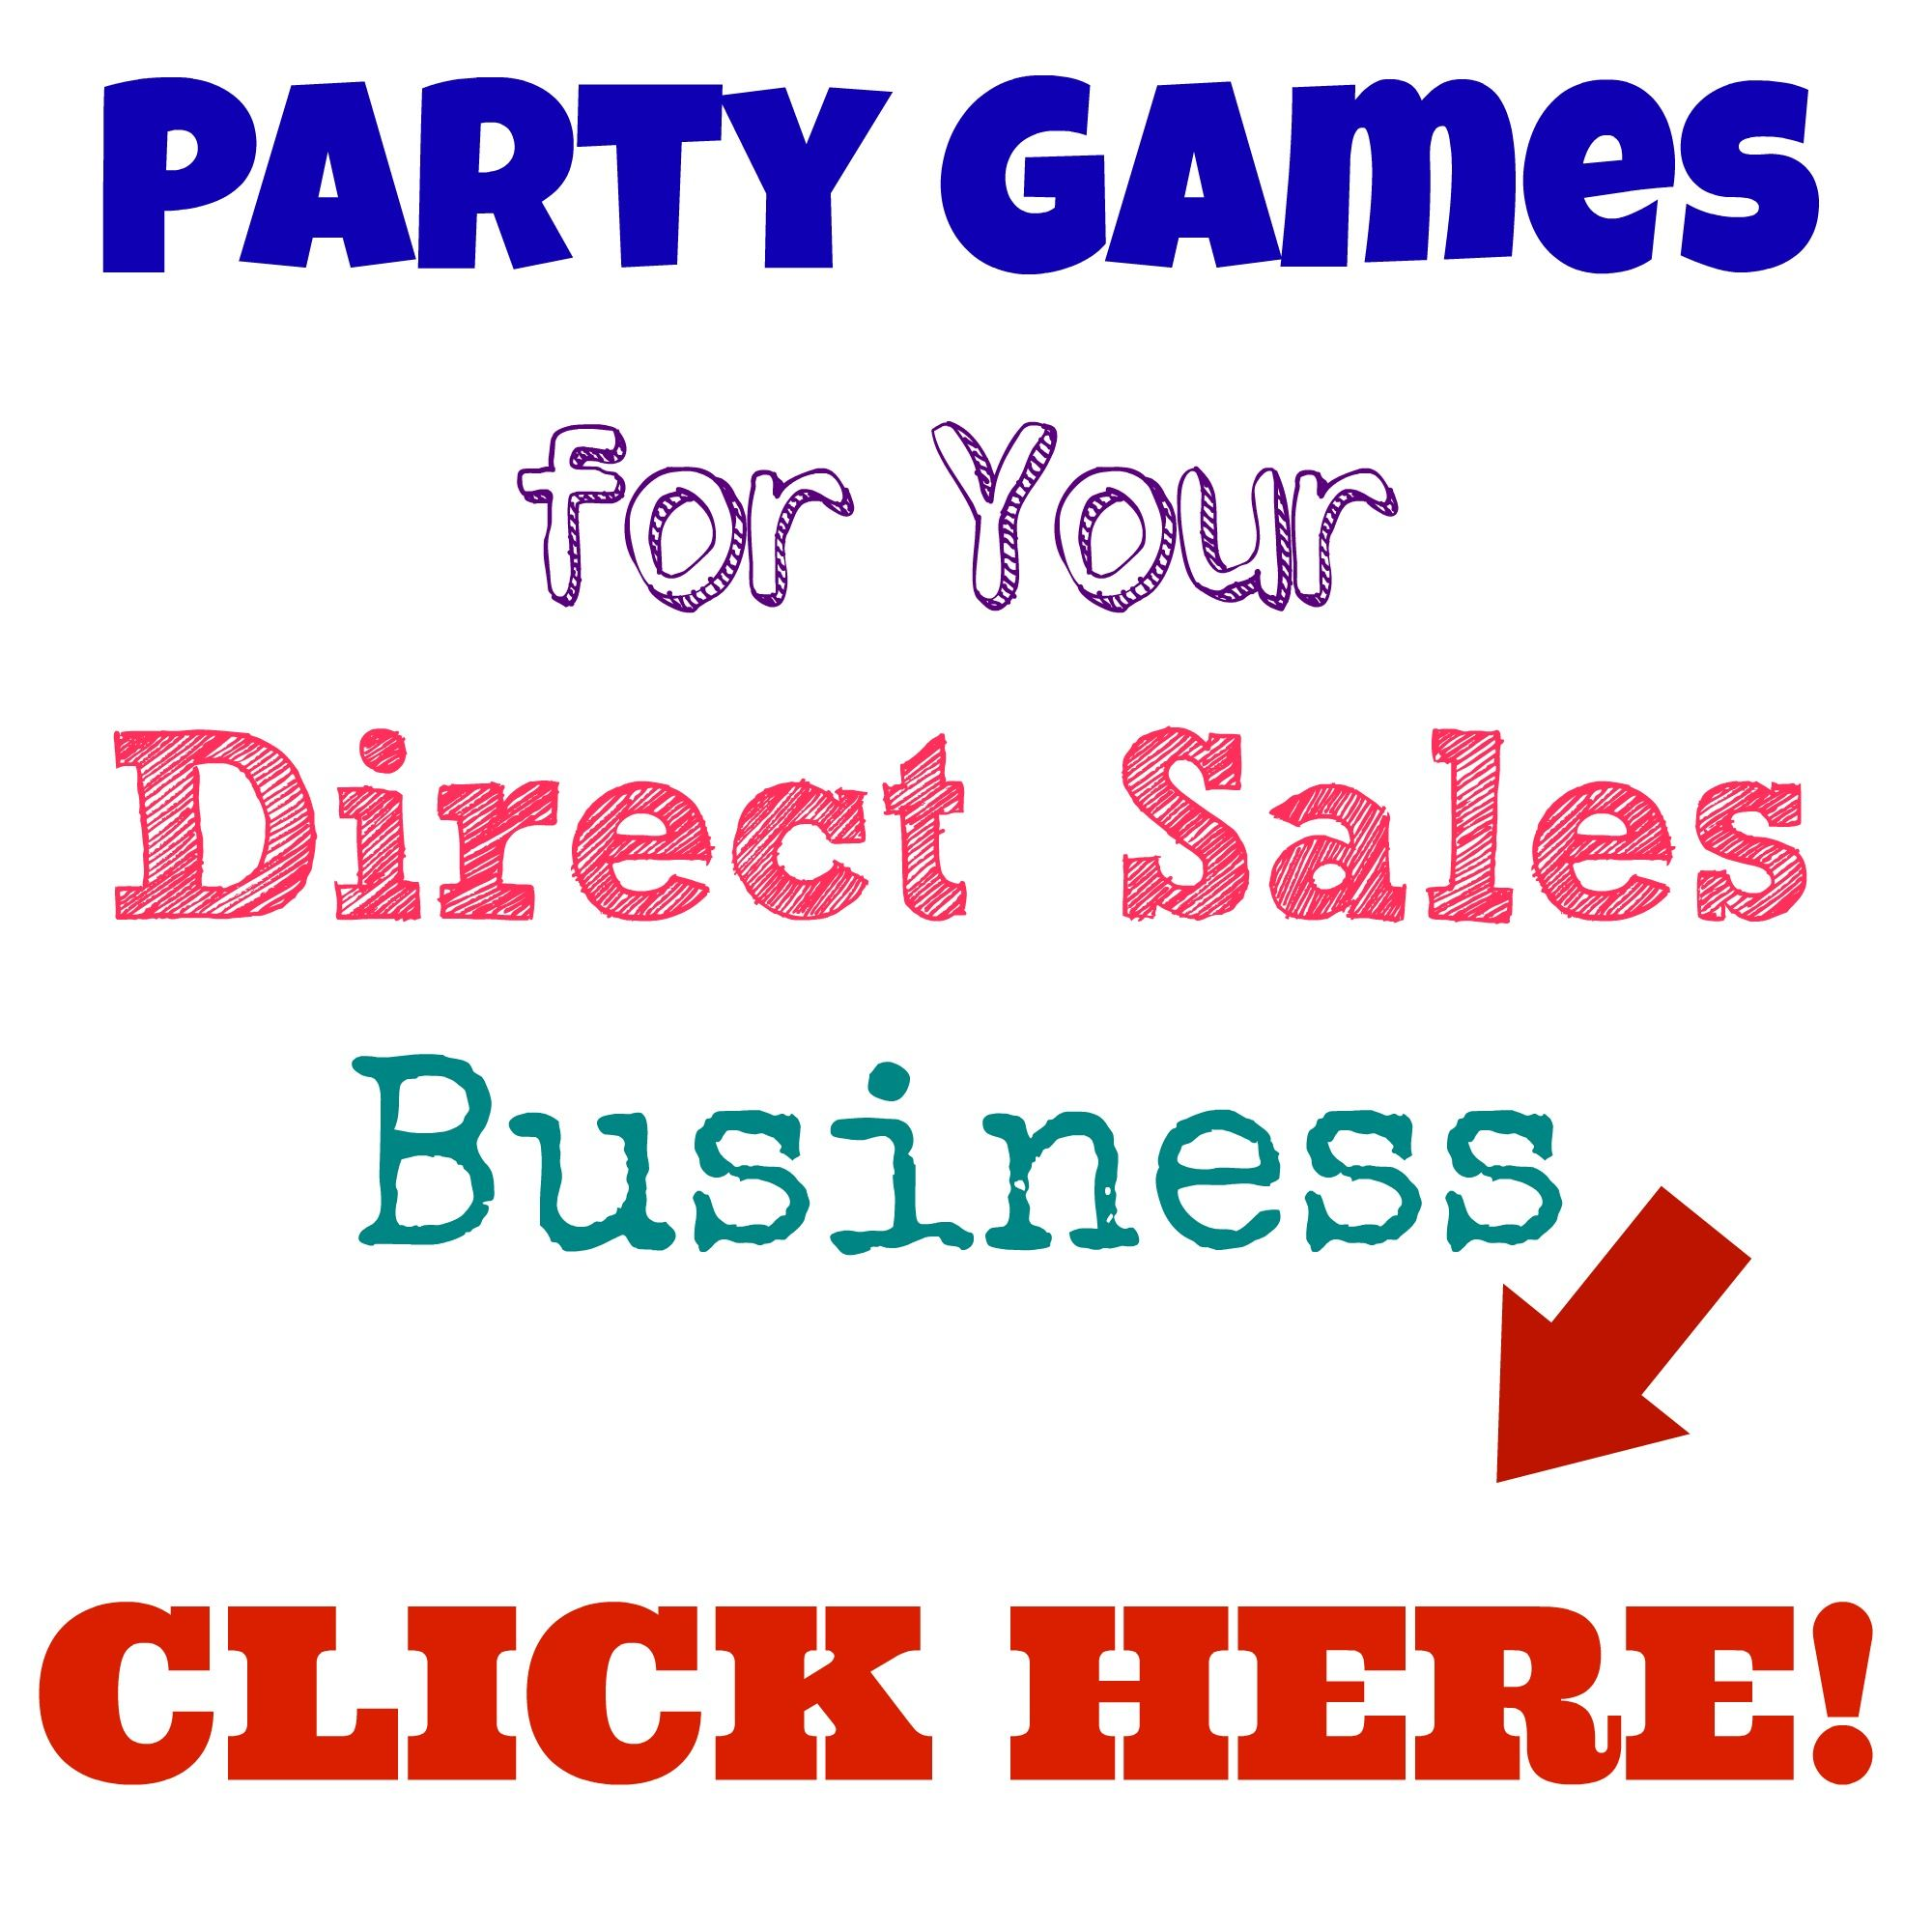 Party Games for Your Direct Sales Business Thirty one